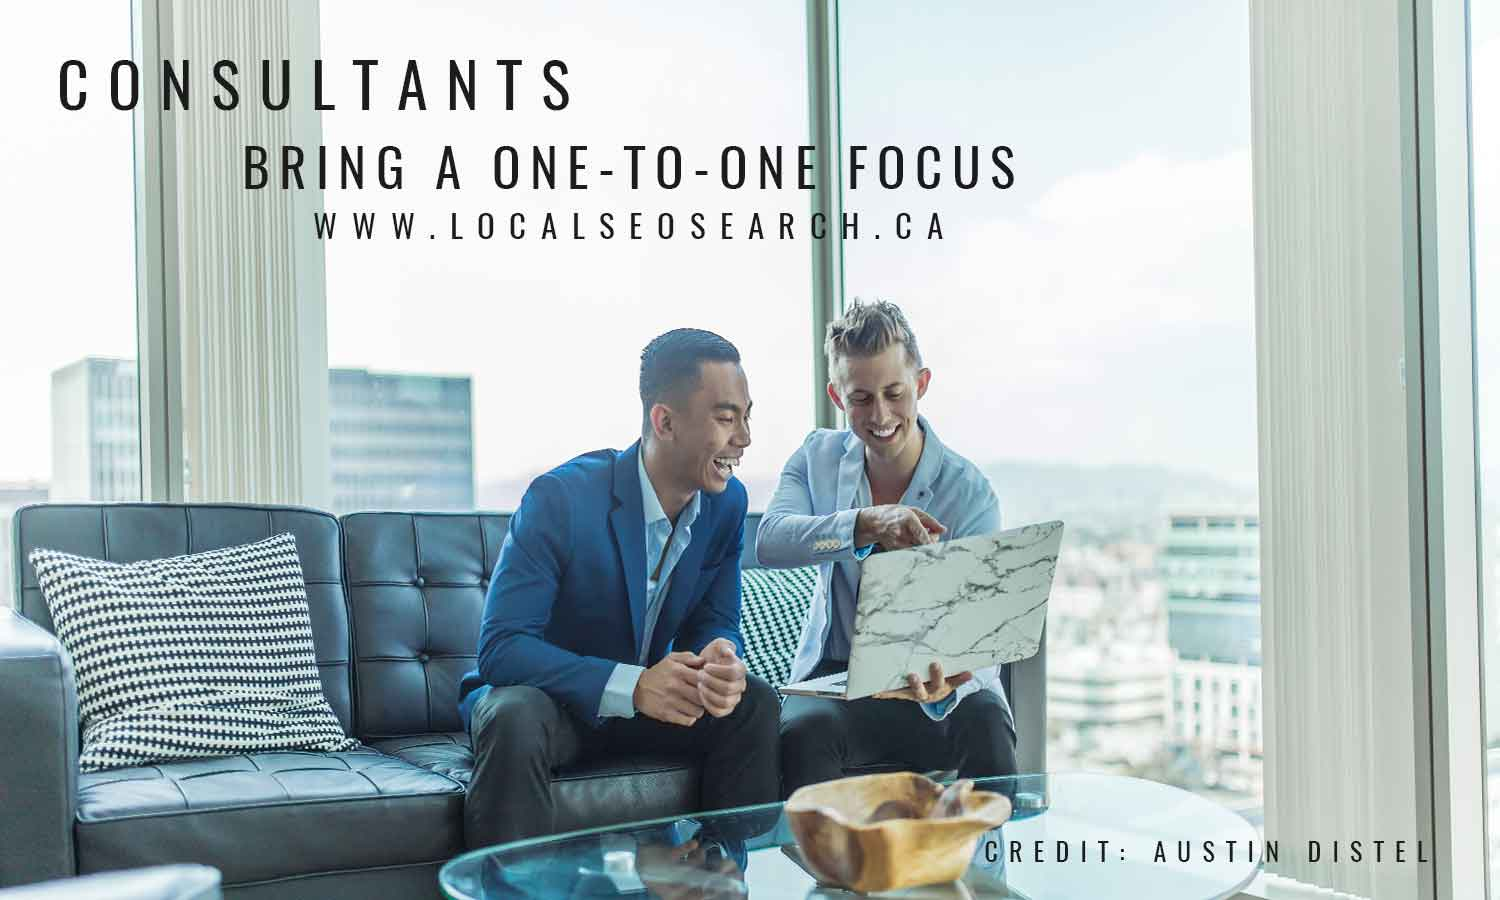 Consultants bring a one-to-one focus